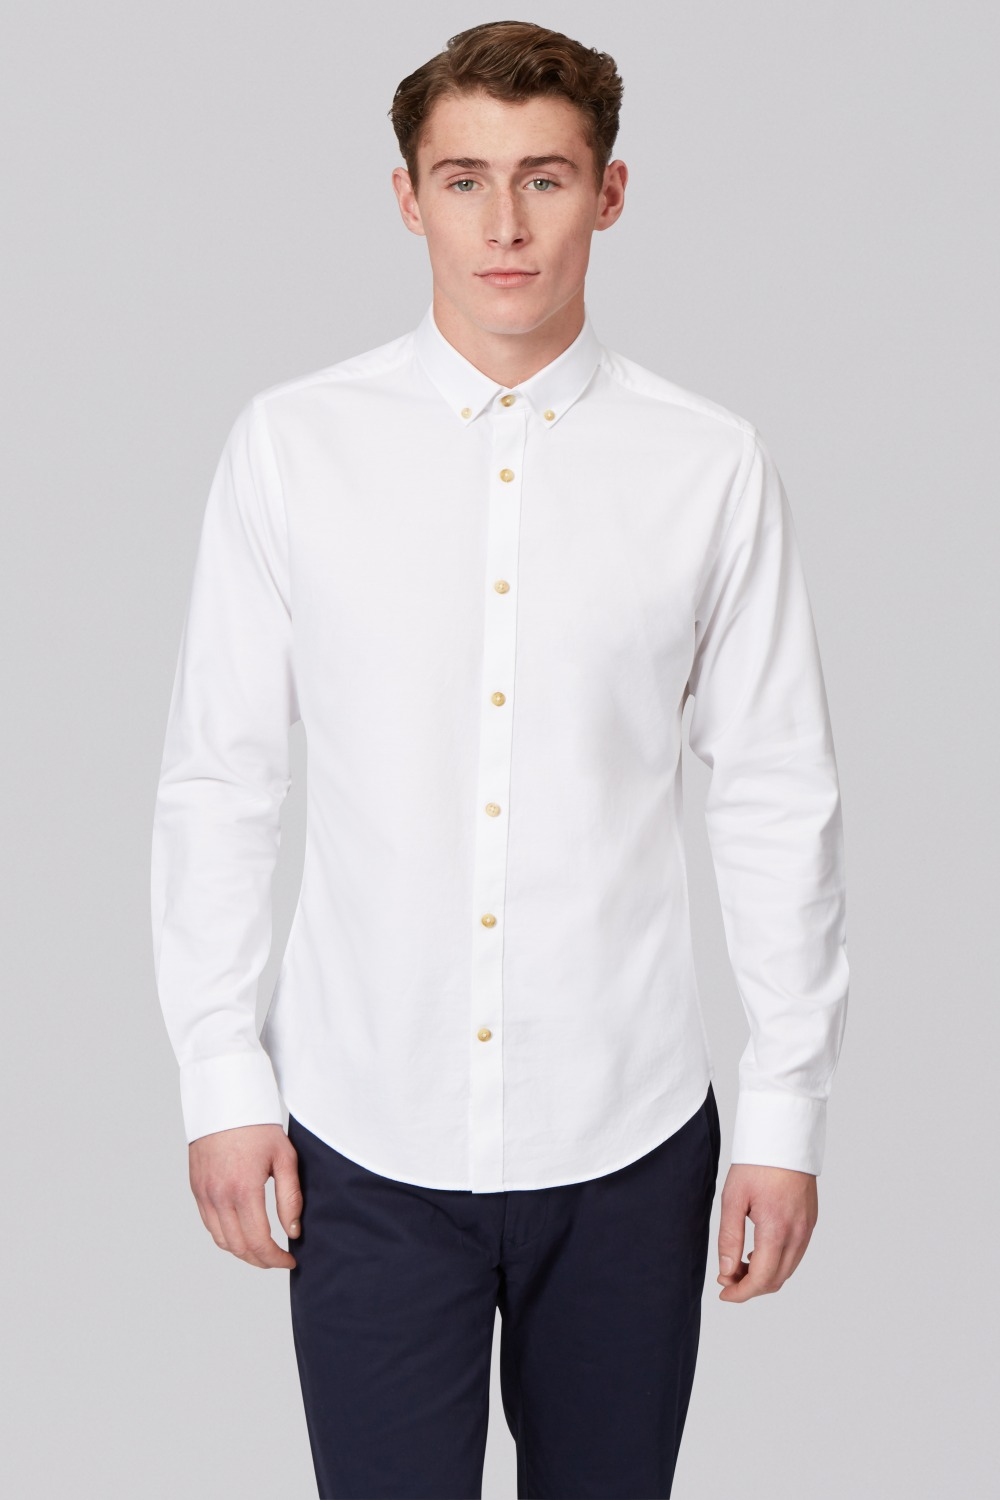 June 2014 artee shirt for Button down uniform shirts